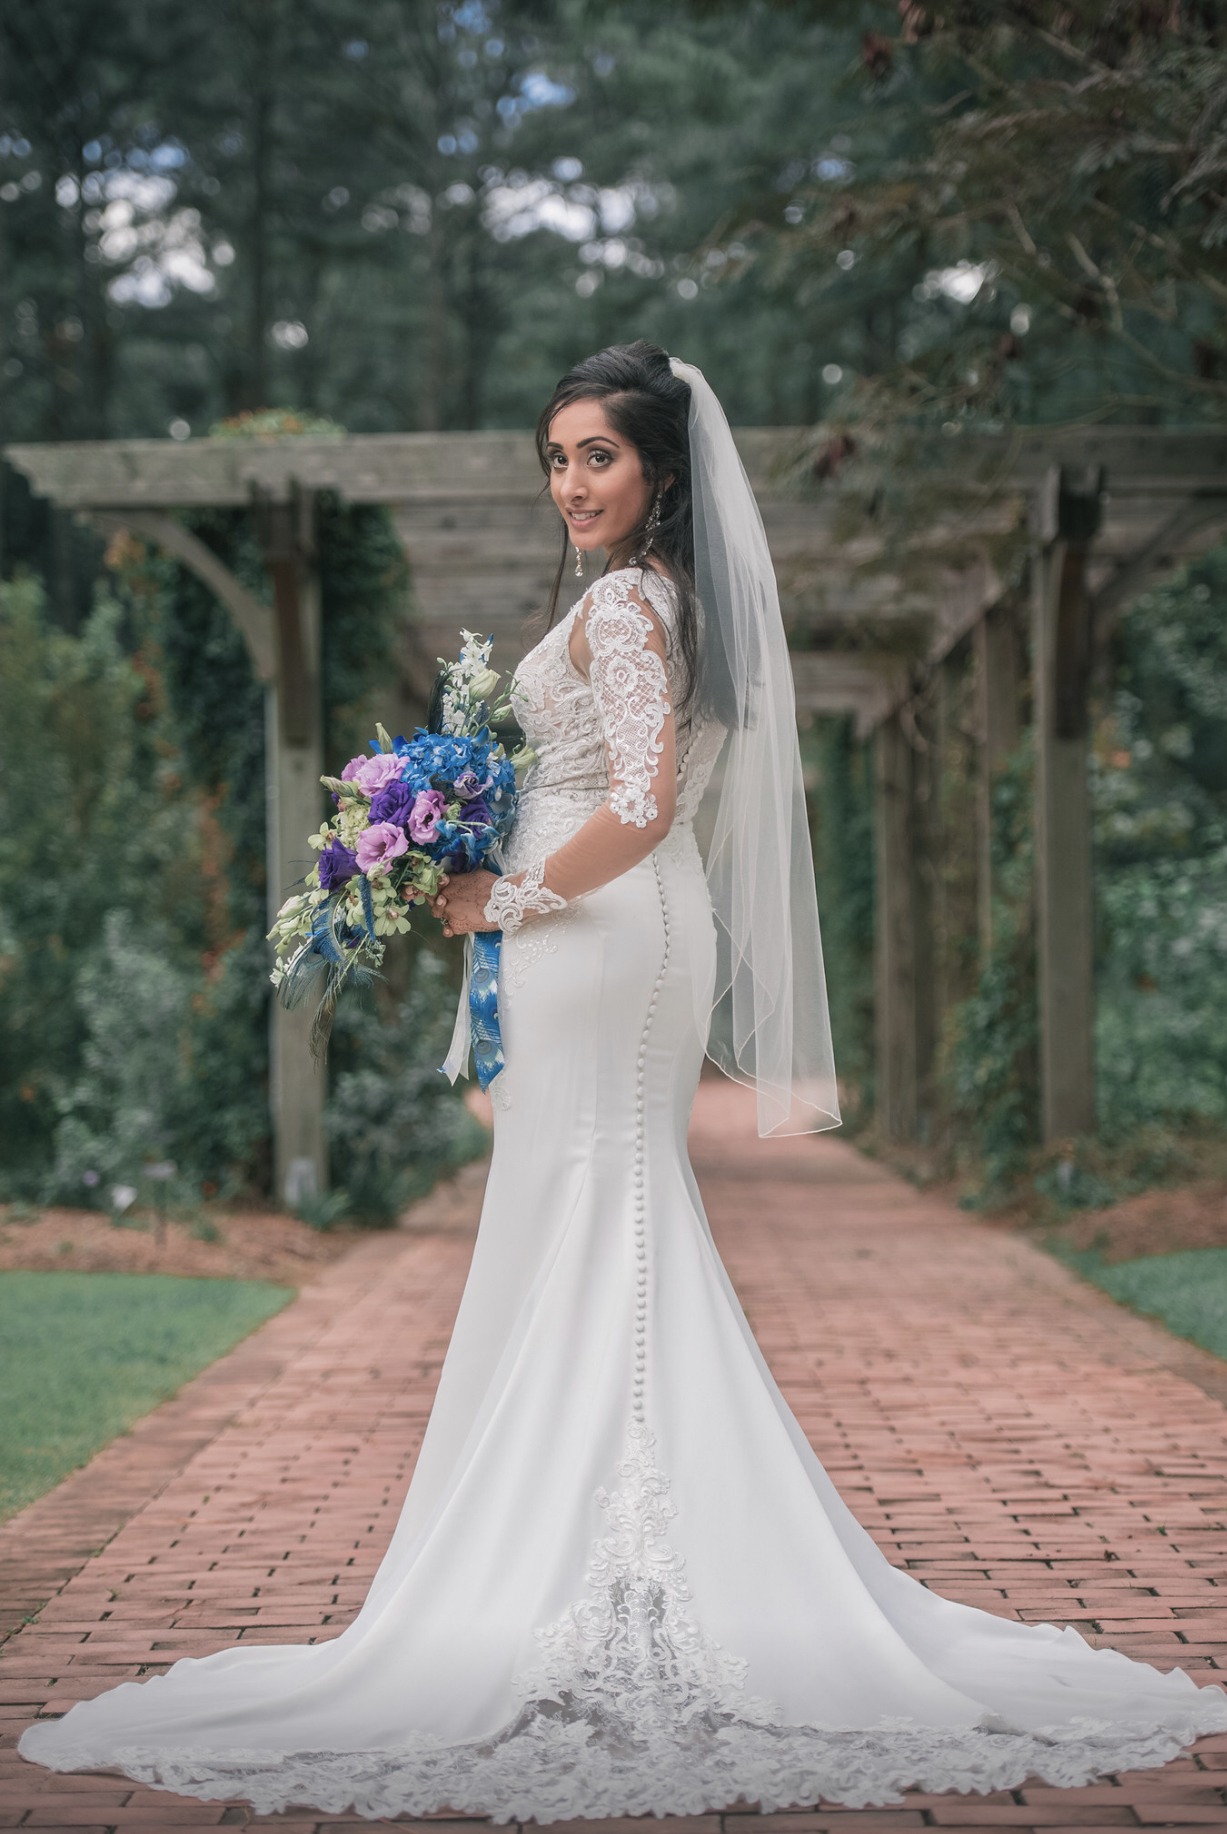 Step 2: Find your Style - Wedding Photography | Orlando, Miami, Tampa, Jacksonville, St.Augustine, FL